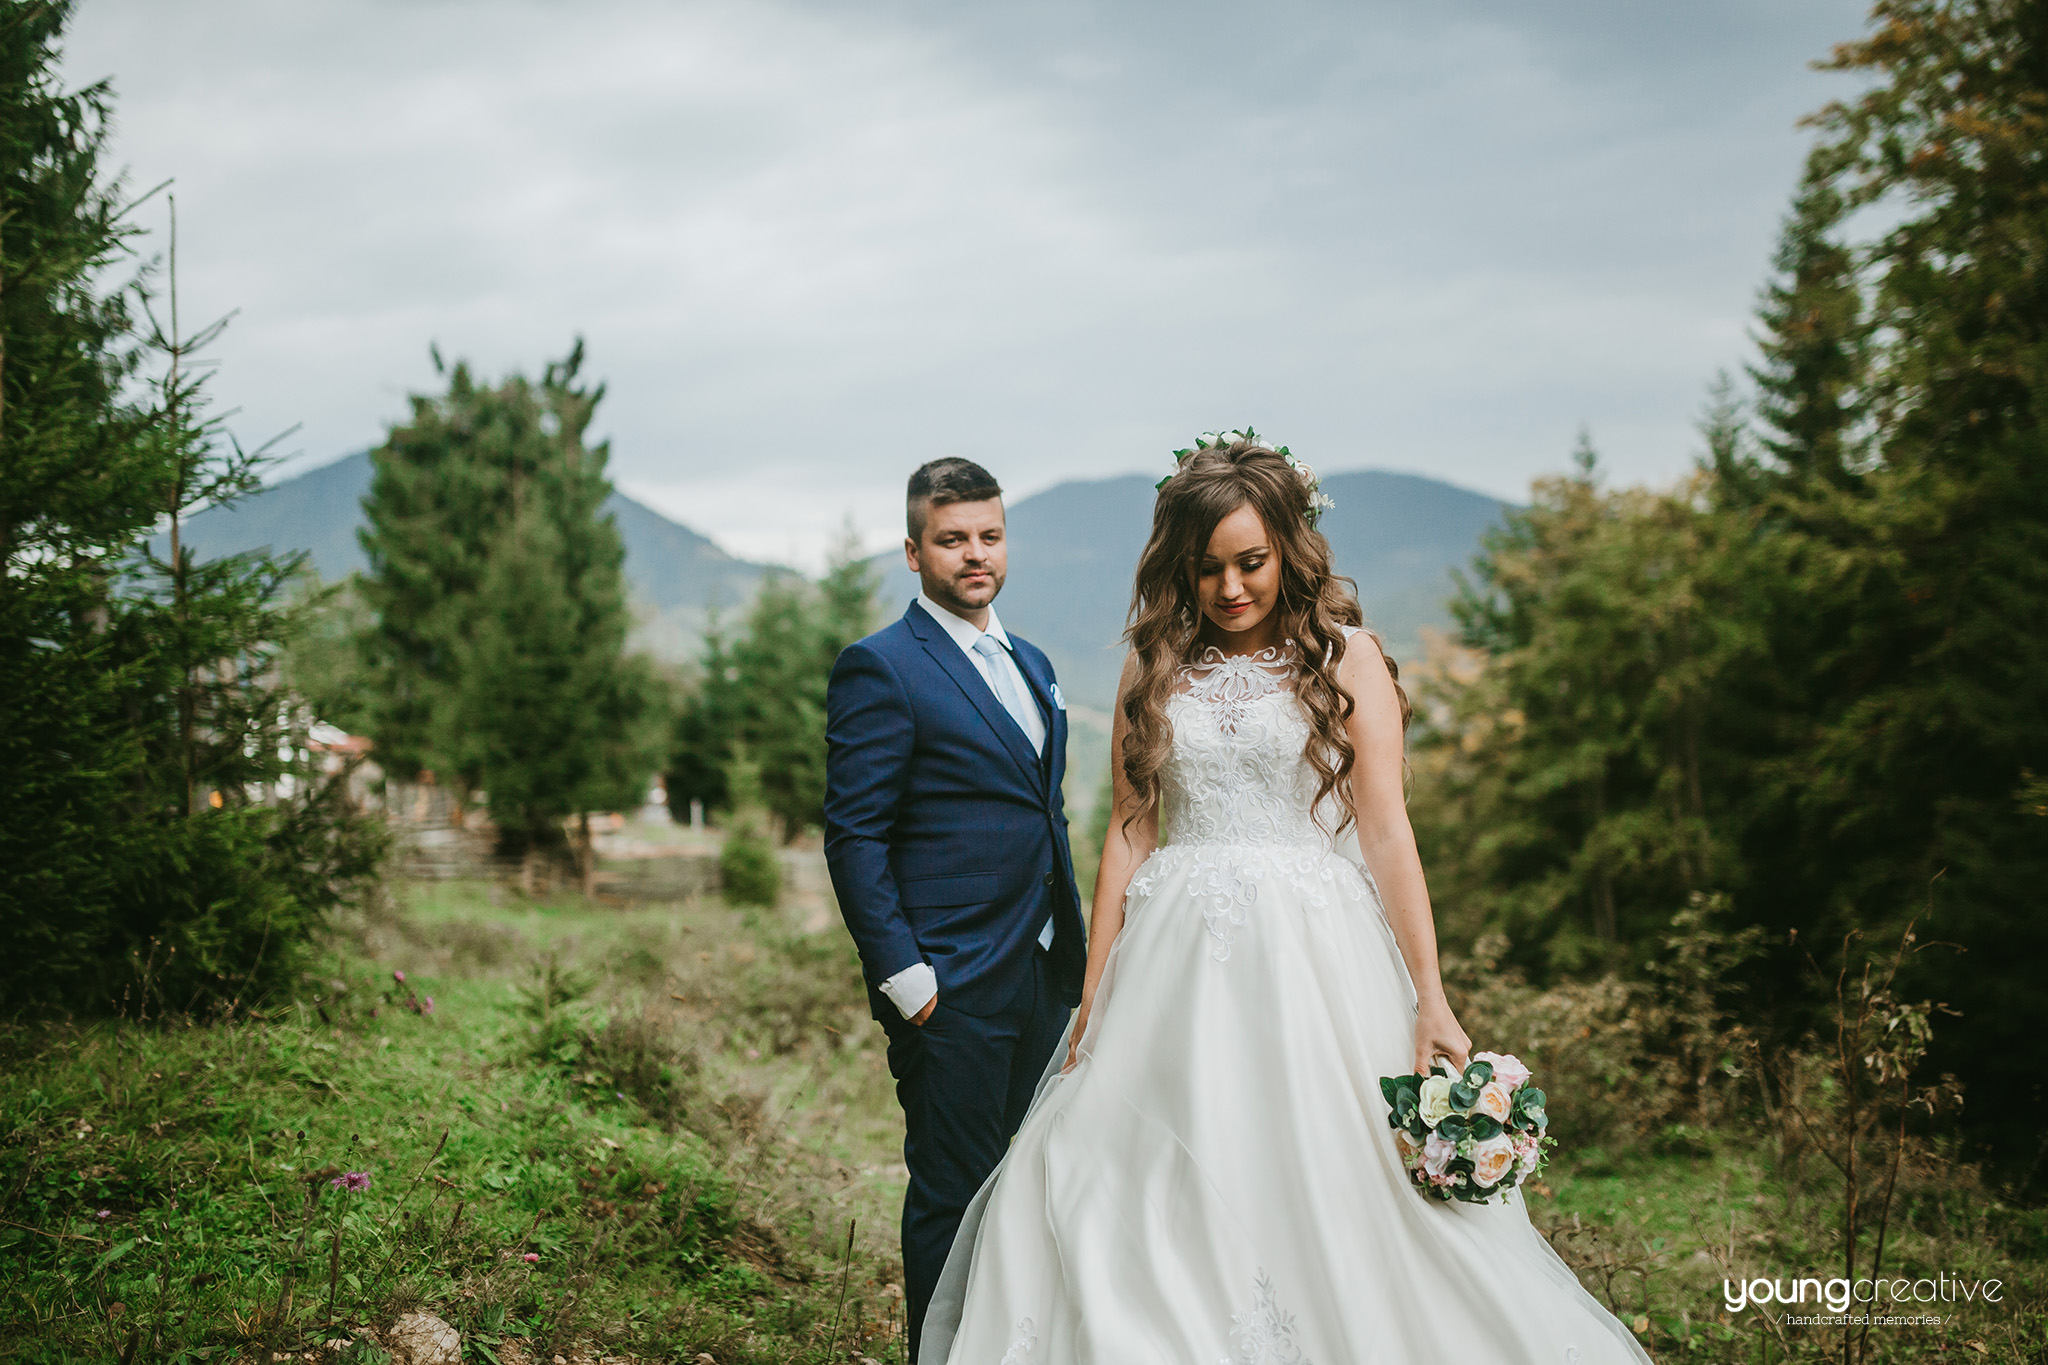 Maria & Teodor | youngcreative.info media © Dan Filipciuc, Cristina Bejan | Love The Dress